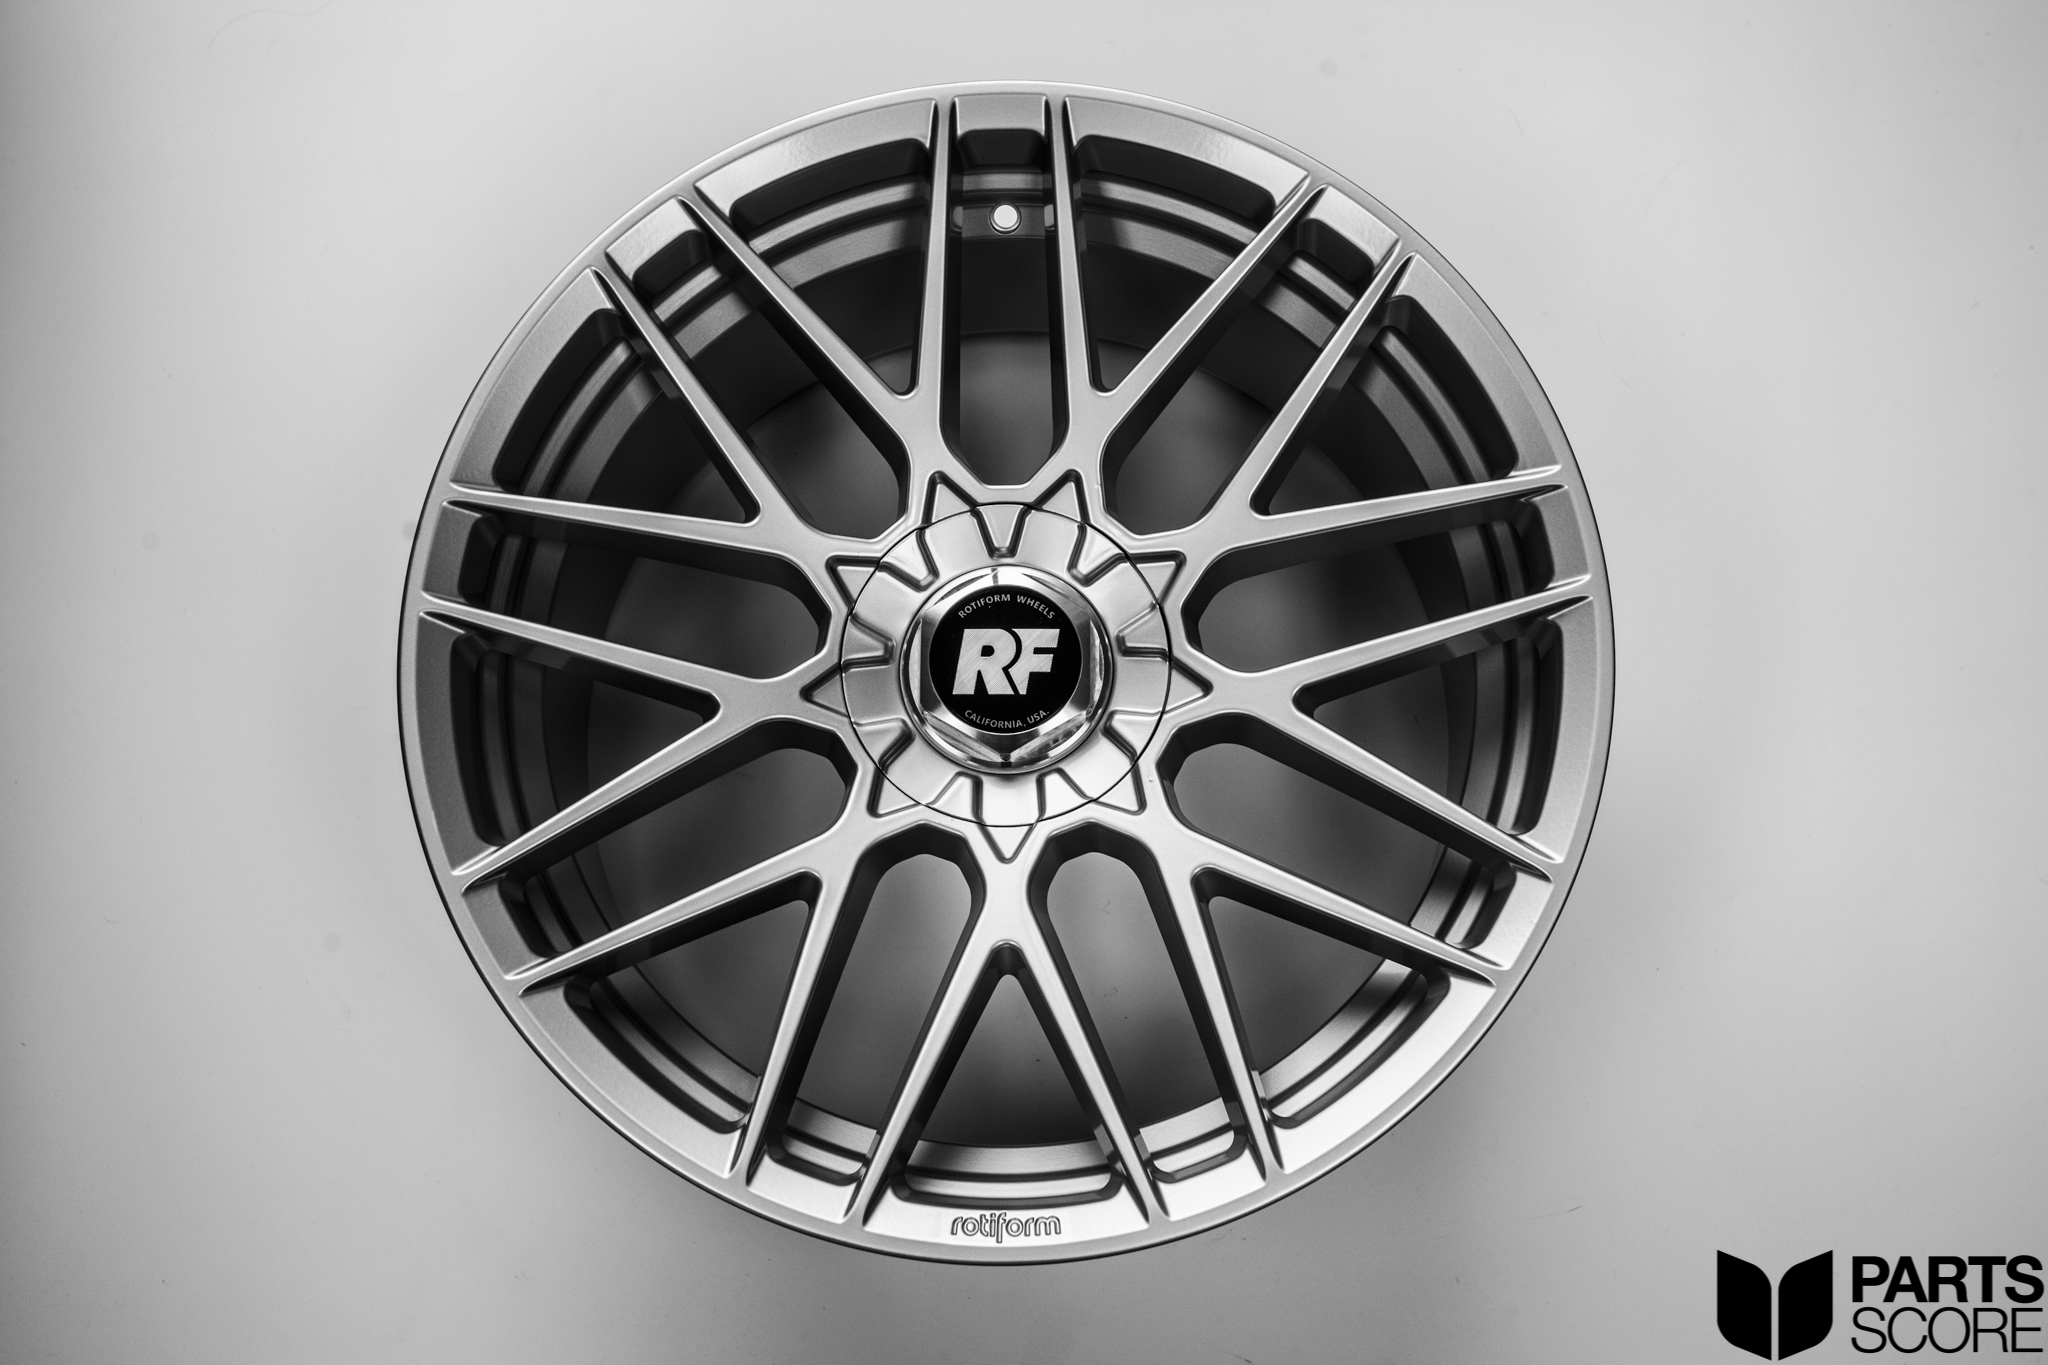 parts score,partsscore, rotiform, rotiform wheels, rotiform rse, rse, rse wheels, fitment, stance, stancenation, stanceworks, stance, static, bagged, audi, vw, volkswagen, audis, audi rs, wheel game, brand new